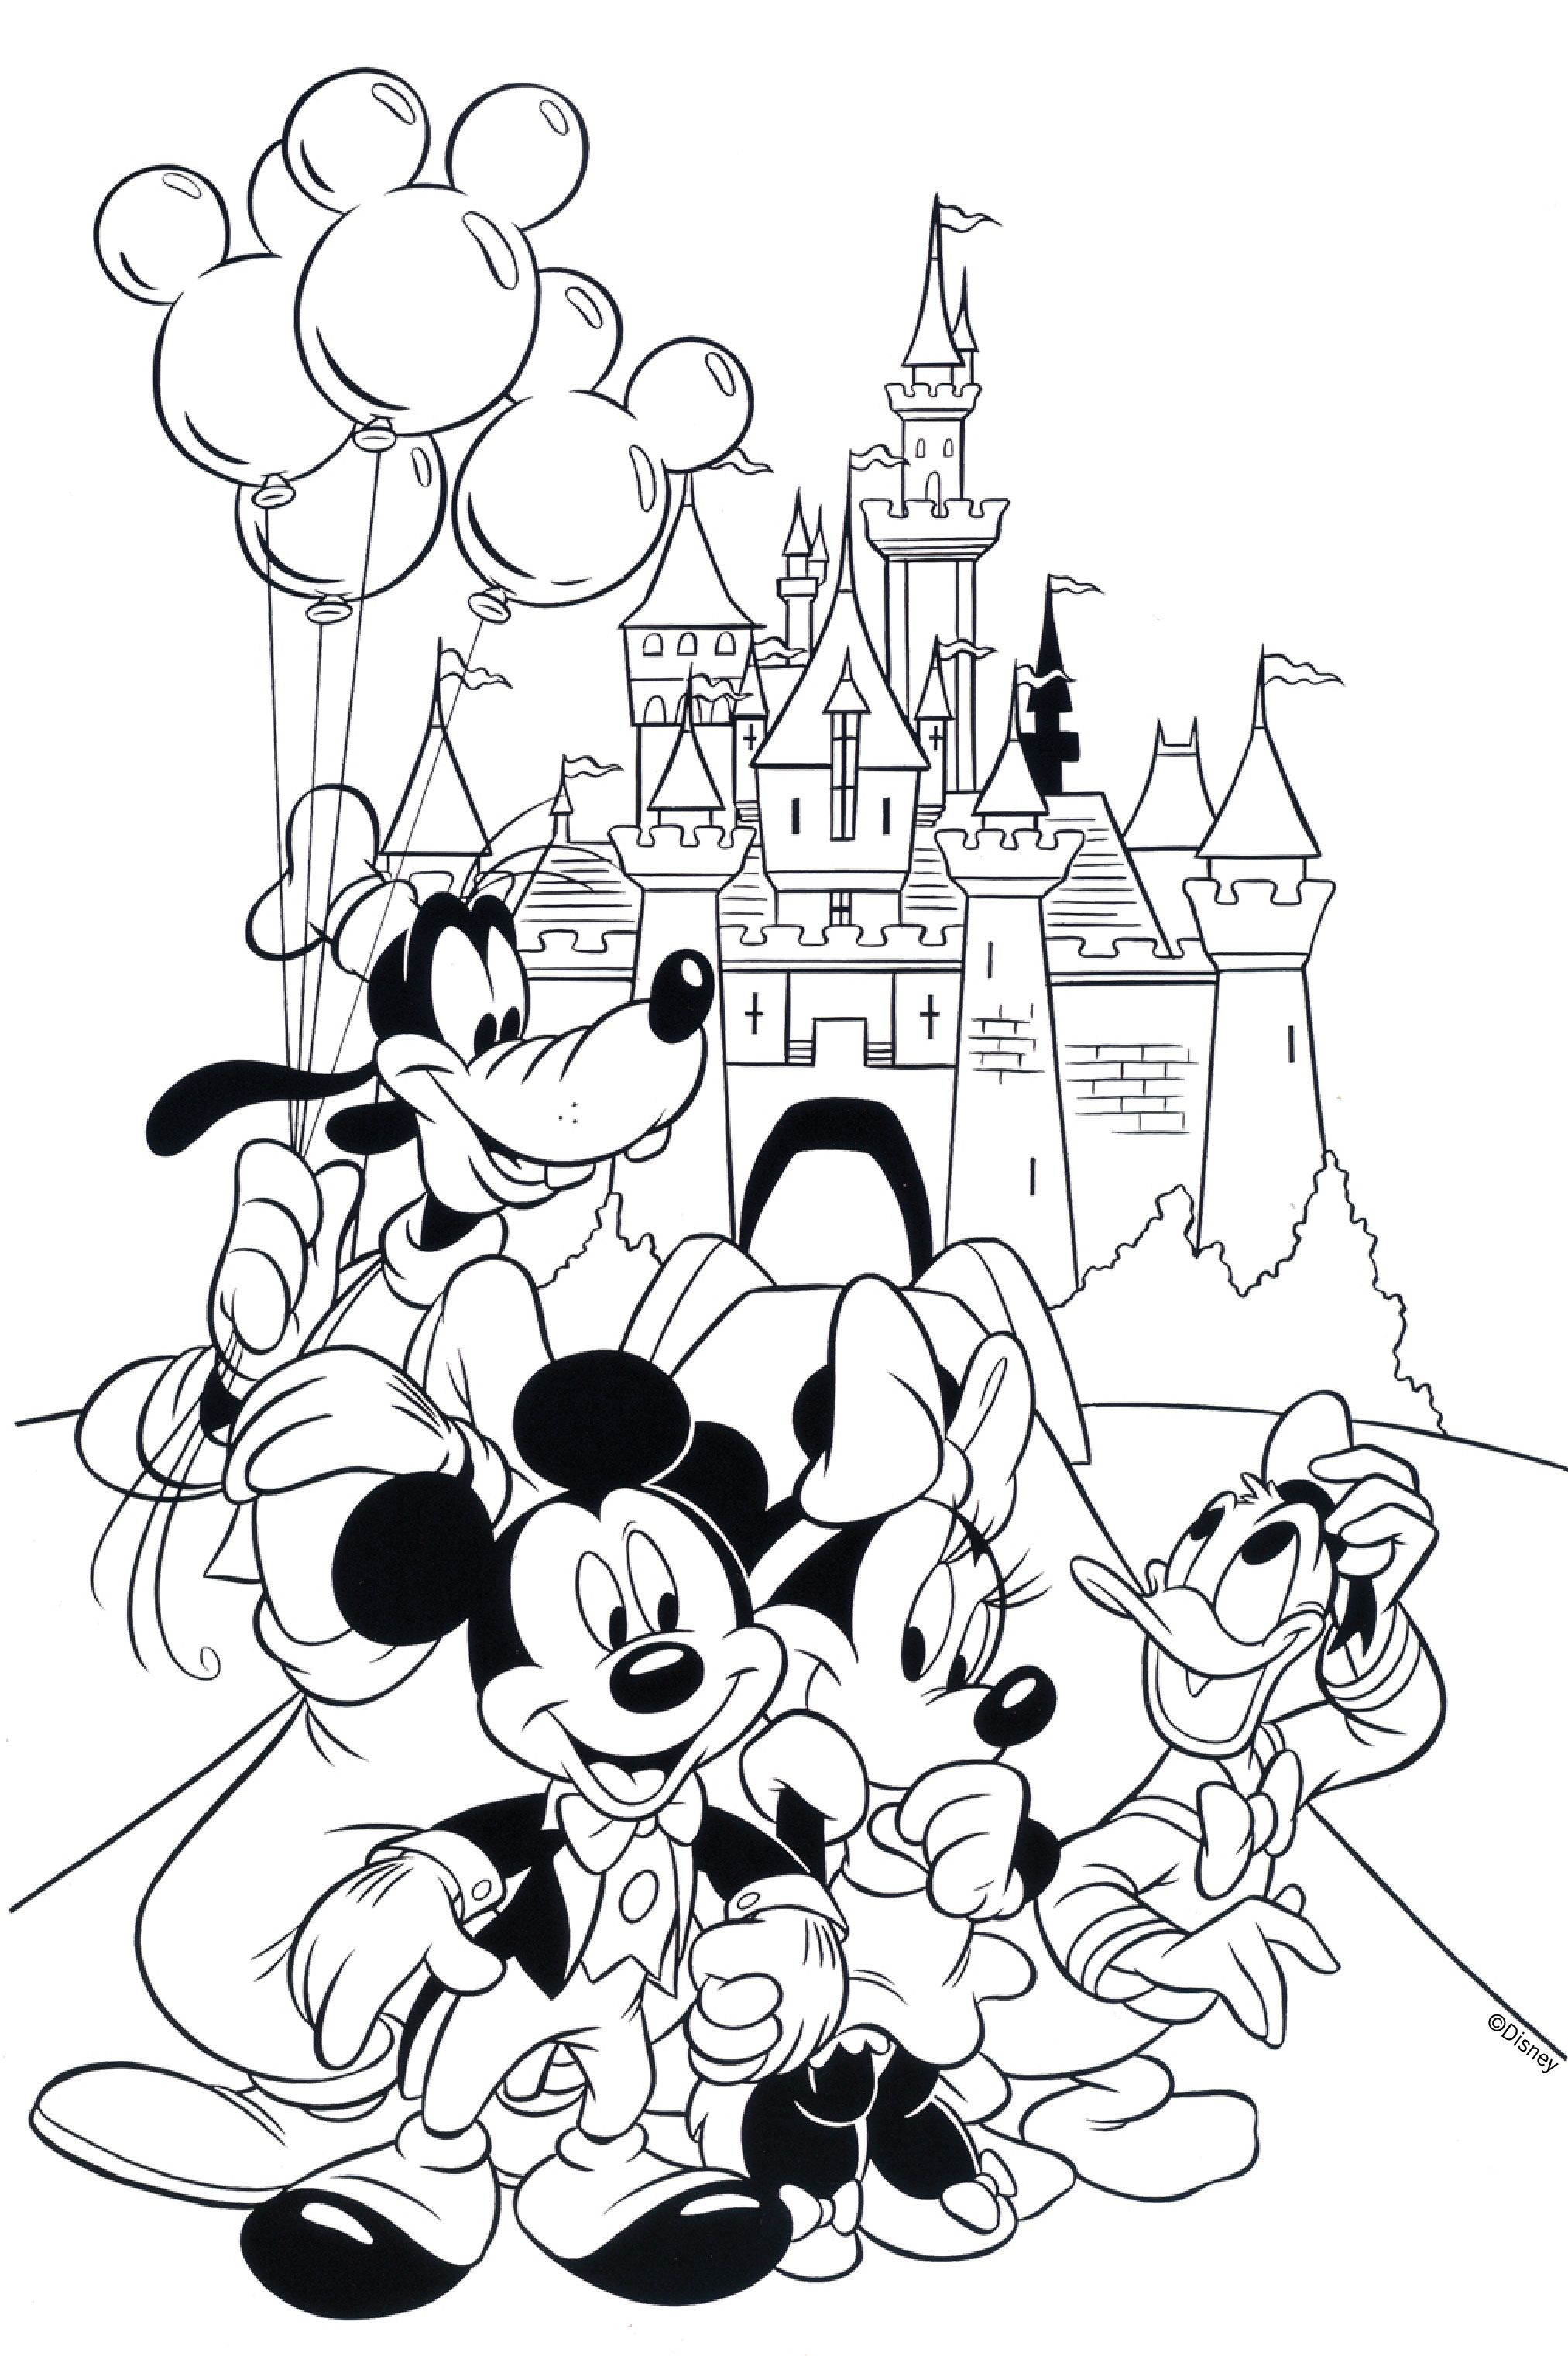 free disney coloring pages - Pictures For Children To Colour In Disney